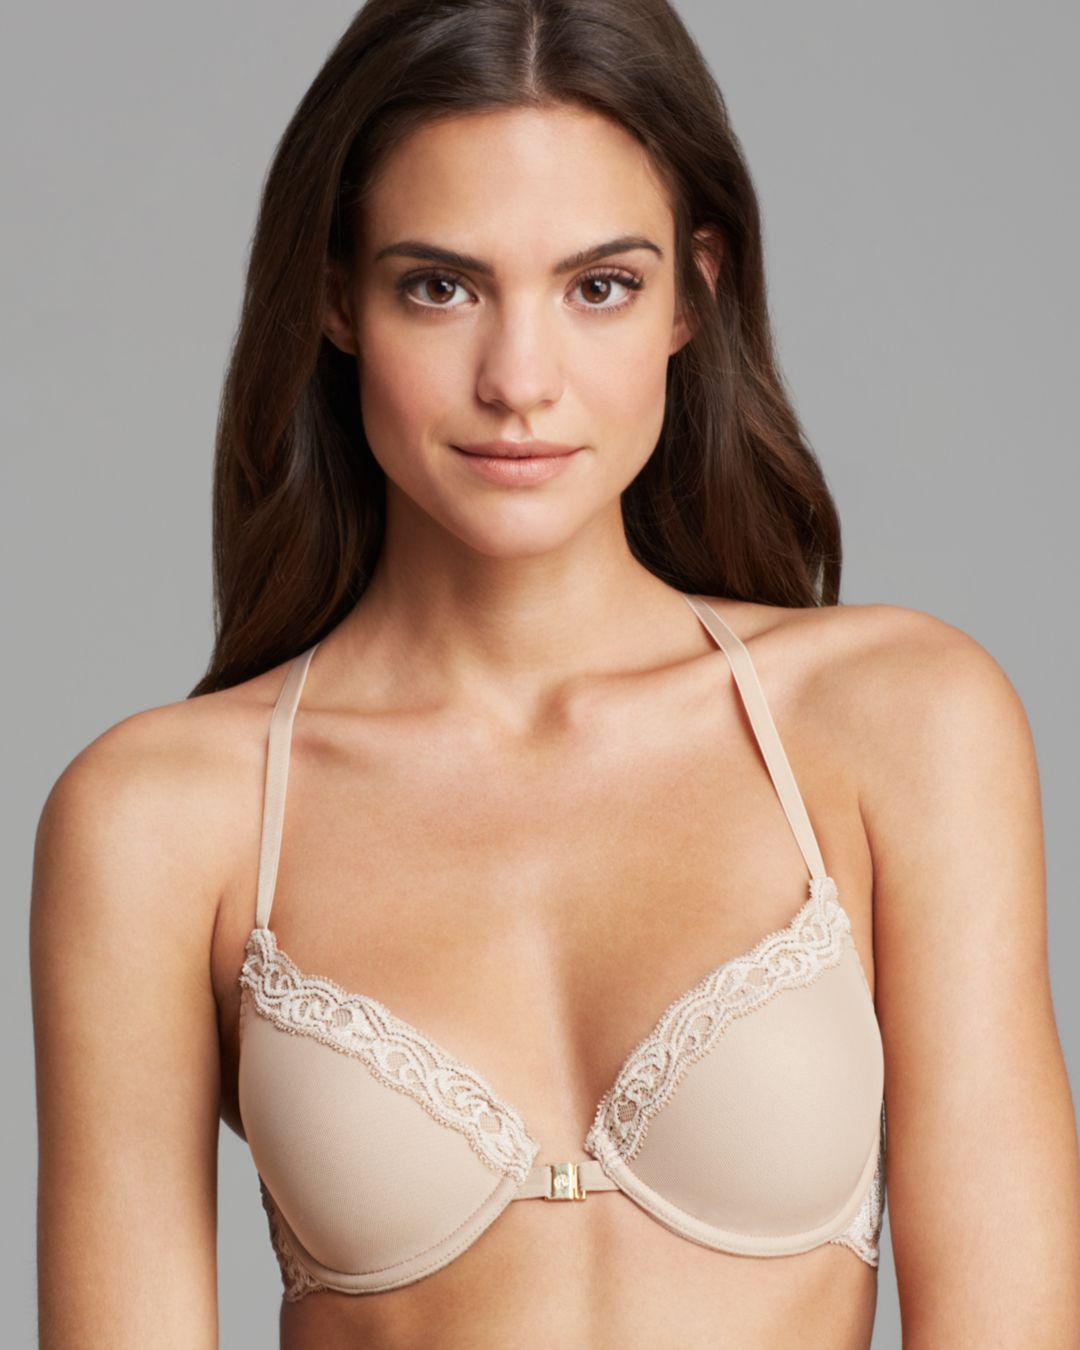 d69d4690eb952 Lyst - Natori Feathers Front Close T-back Bra in Natural - Save ...